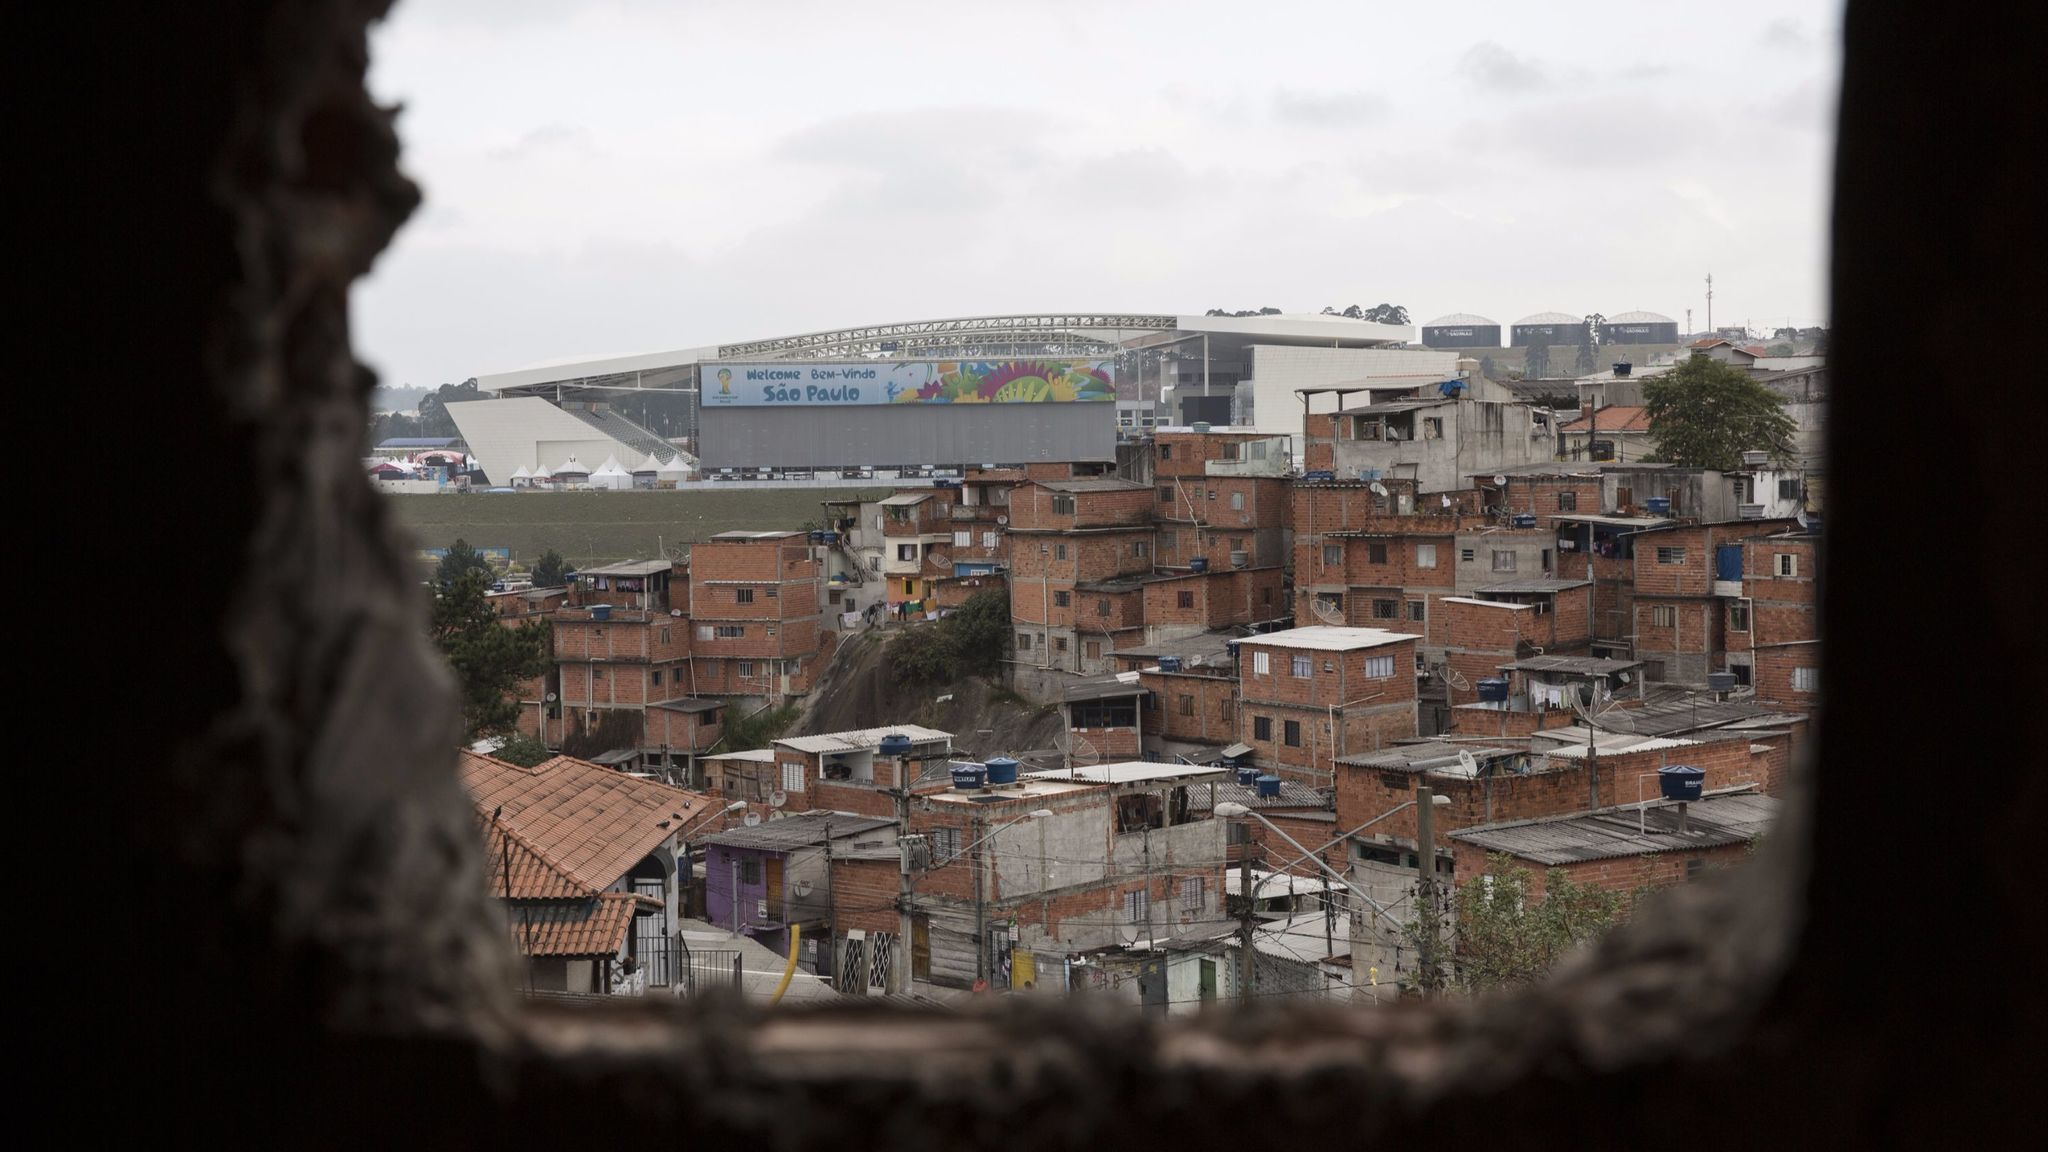 Daily Life in the Neighborhood Adjacent to the 200 Million Pound Arena de Sao Paulo